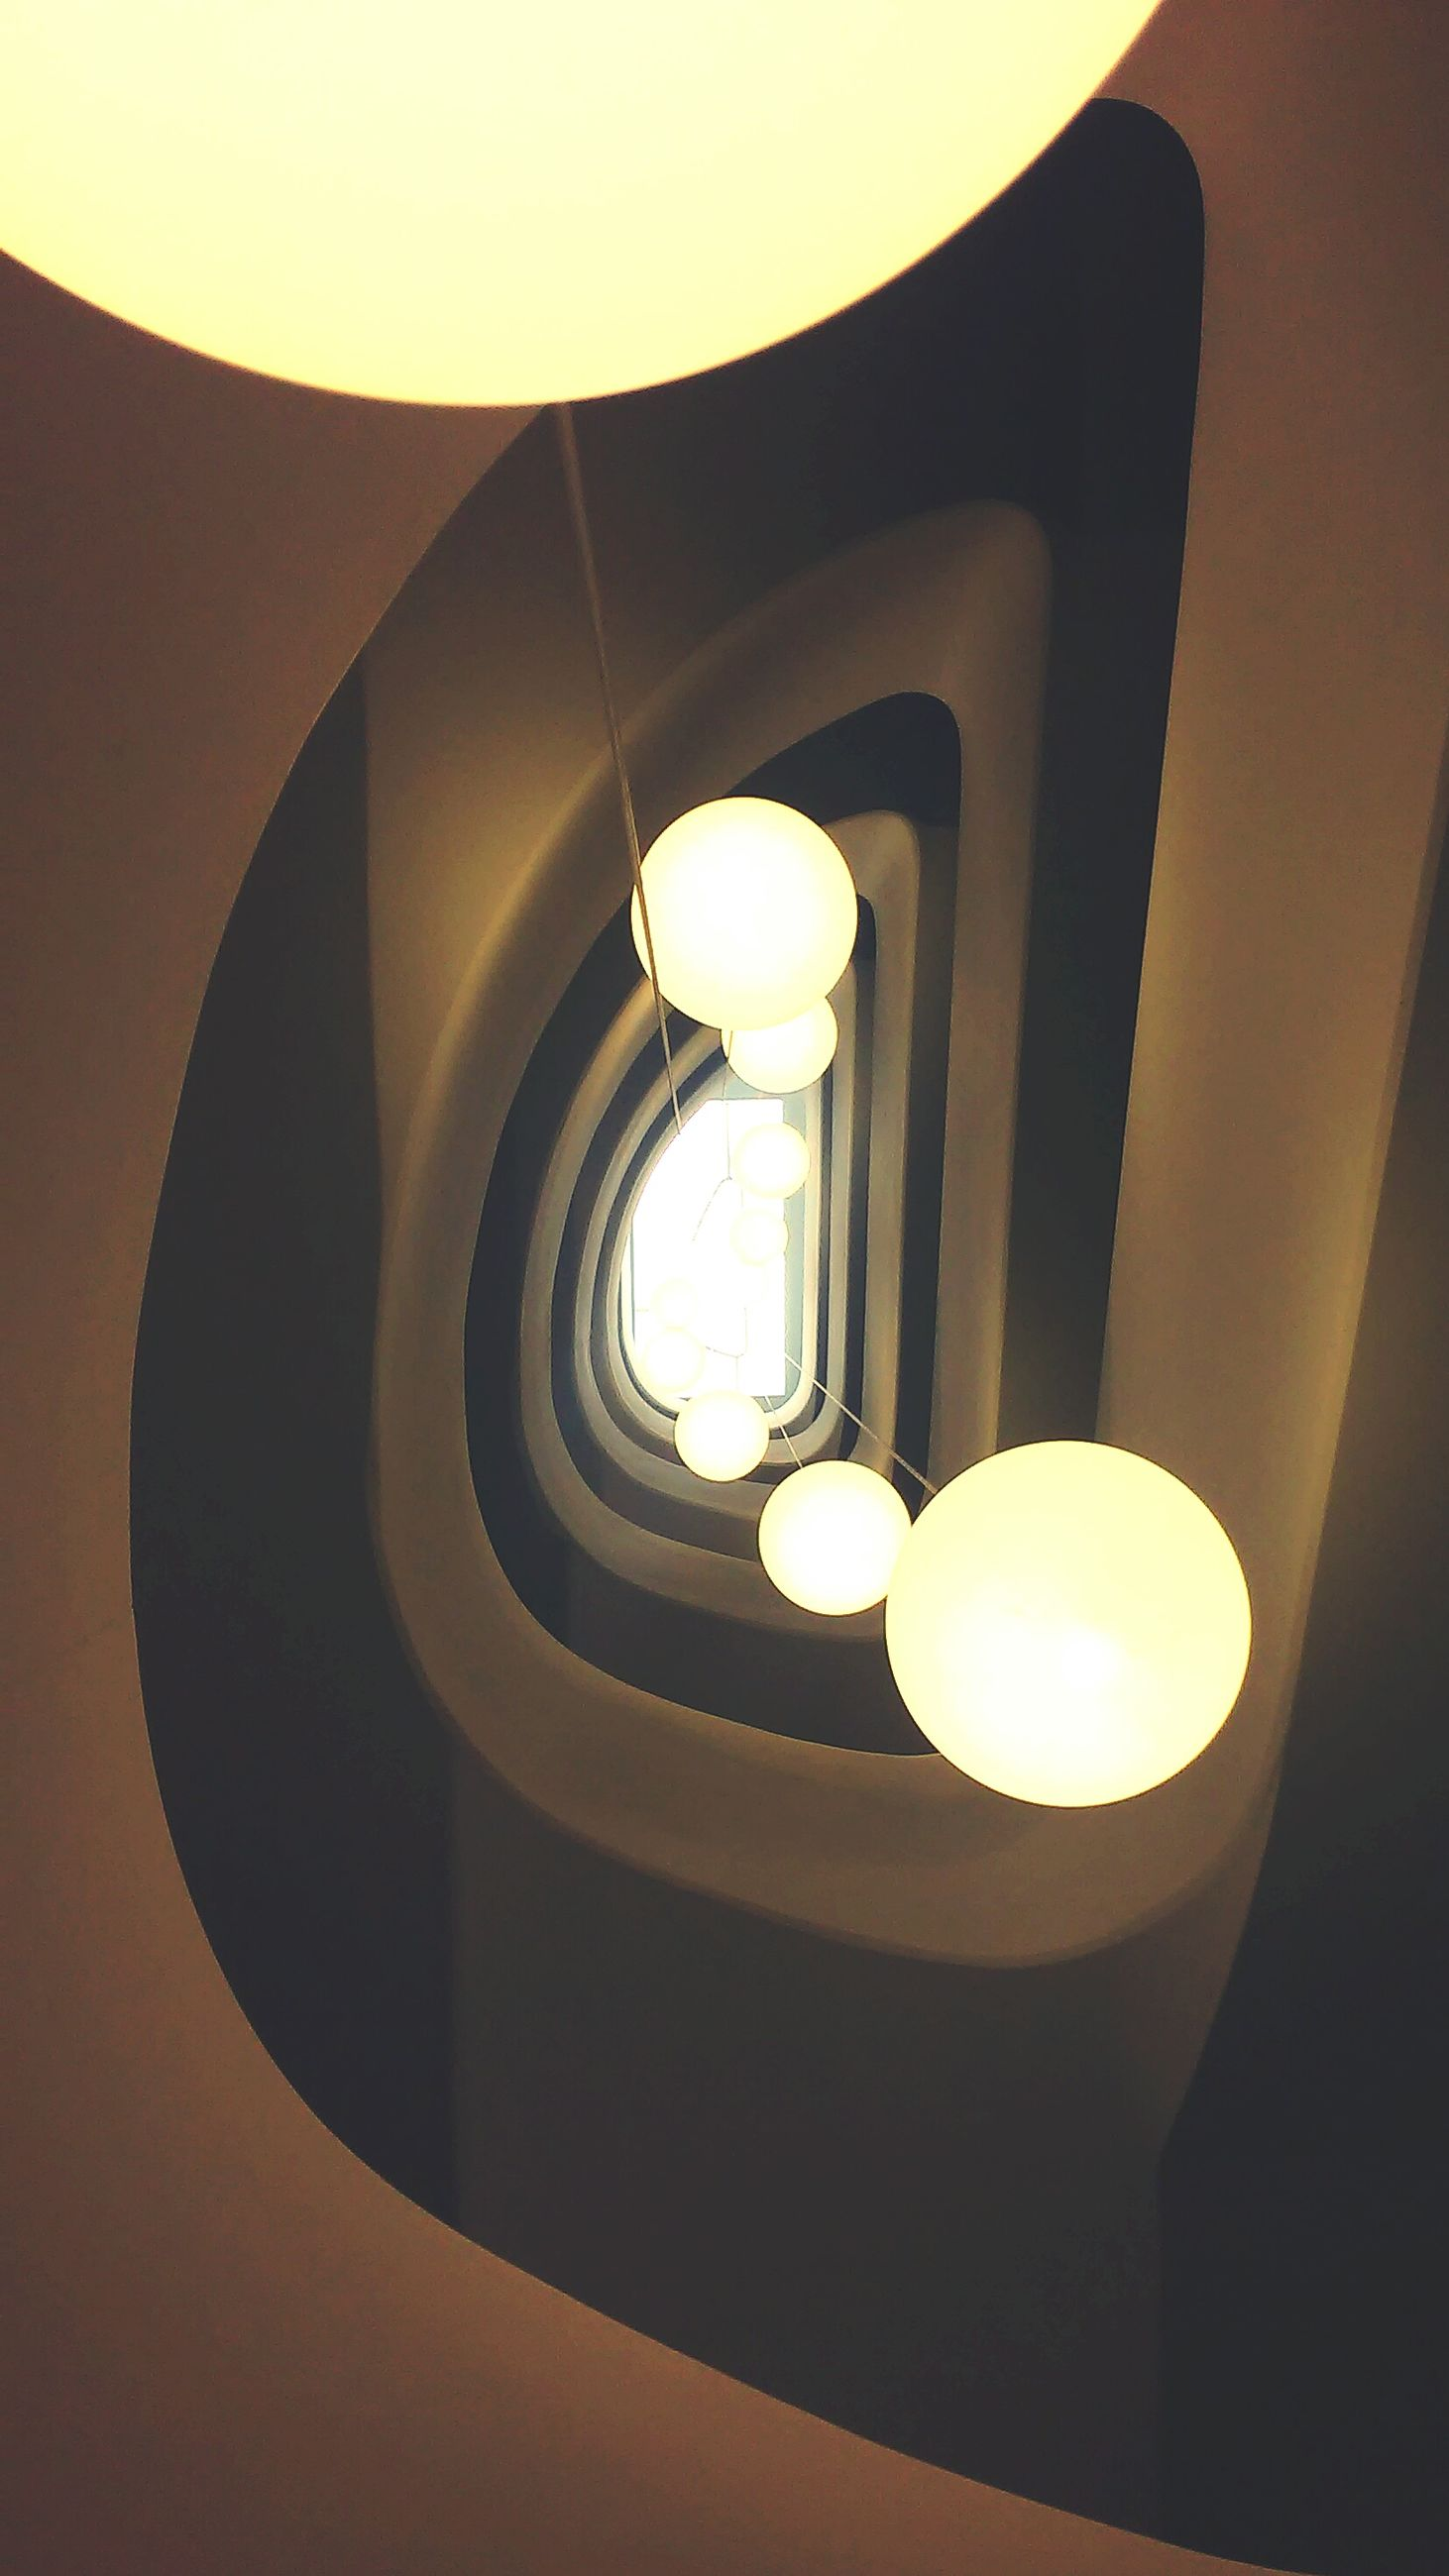 illuminated, low angle view, lighting equipment, architecture, built structure, indoors, electricity, electric light, ceiling, electric lamp, glowing, lamp, directly below, no people, building exterior, light - natural phenomenon, light bulb, hanging, wall - building feature, circle